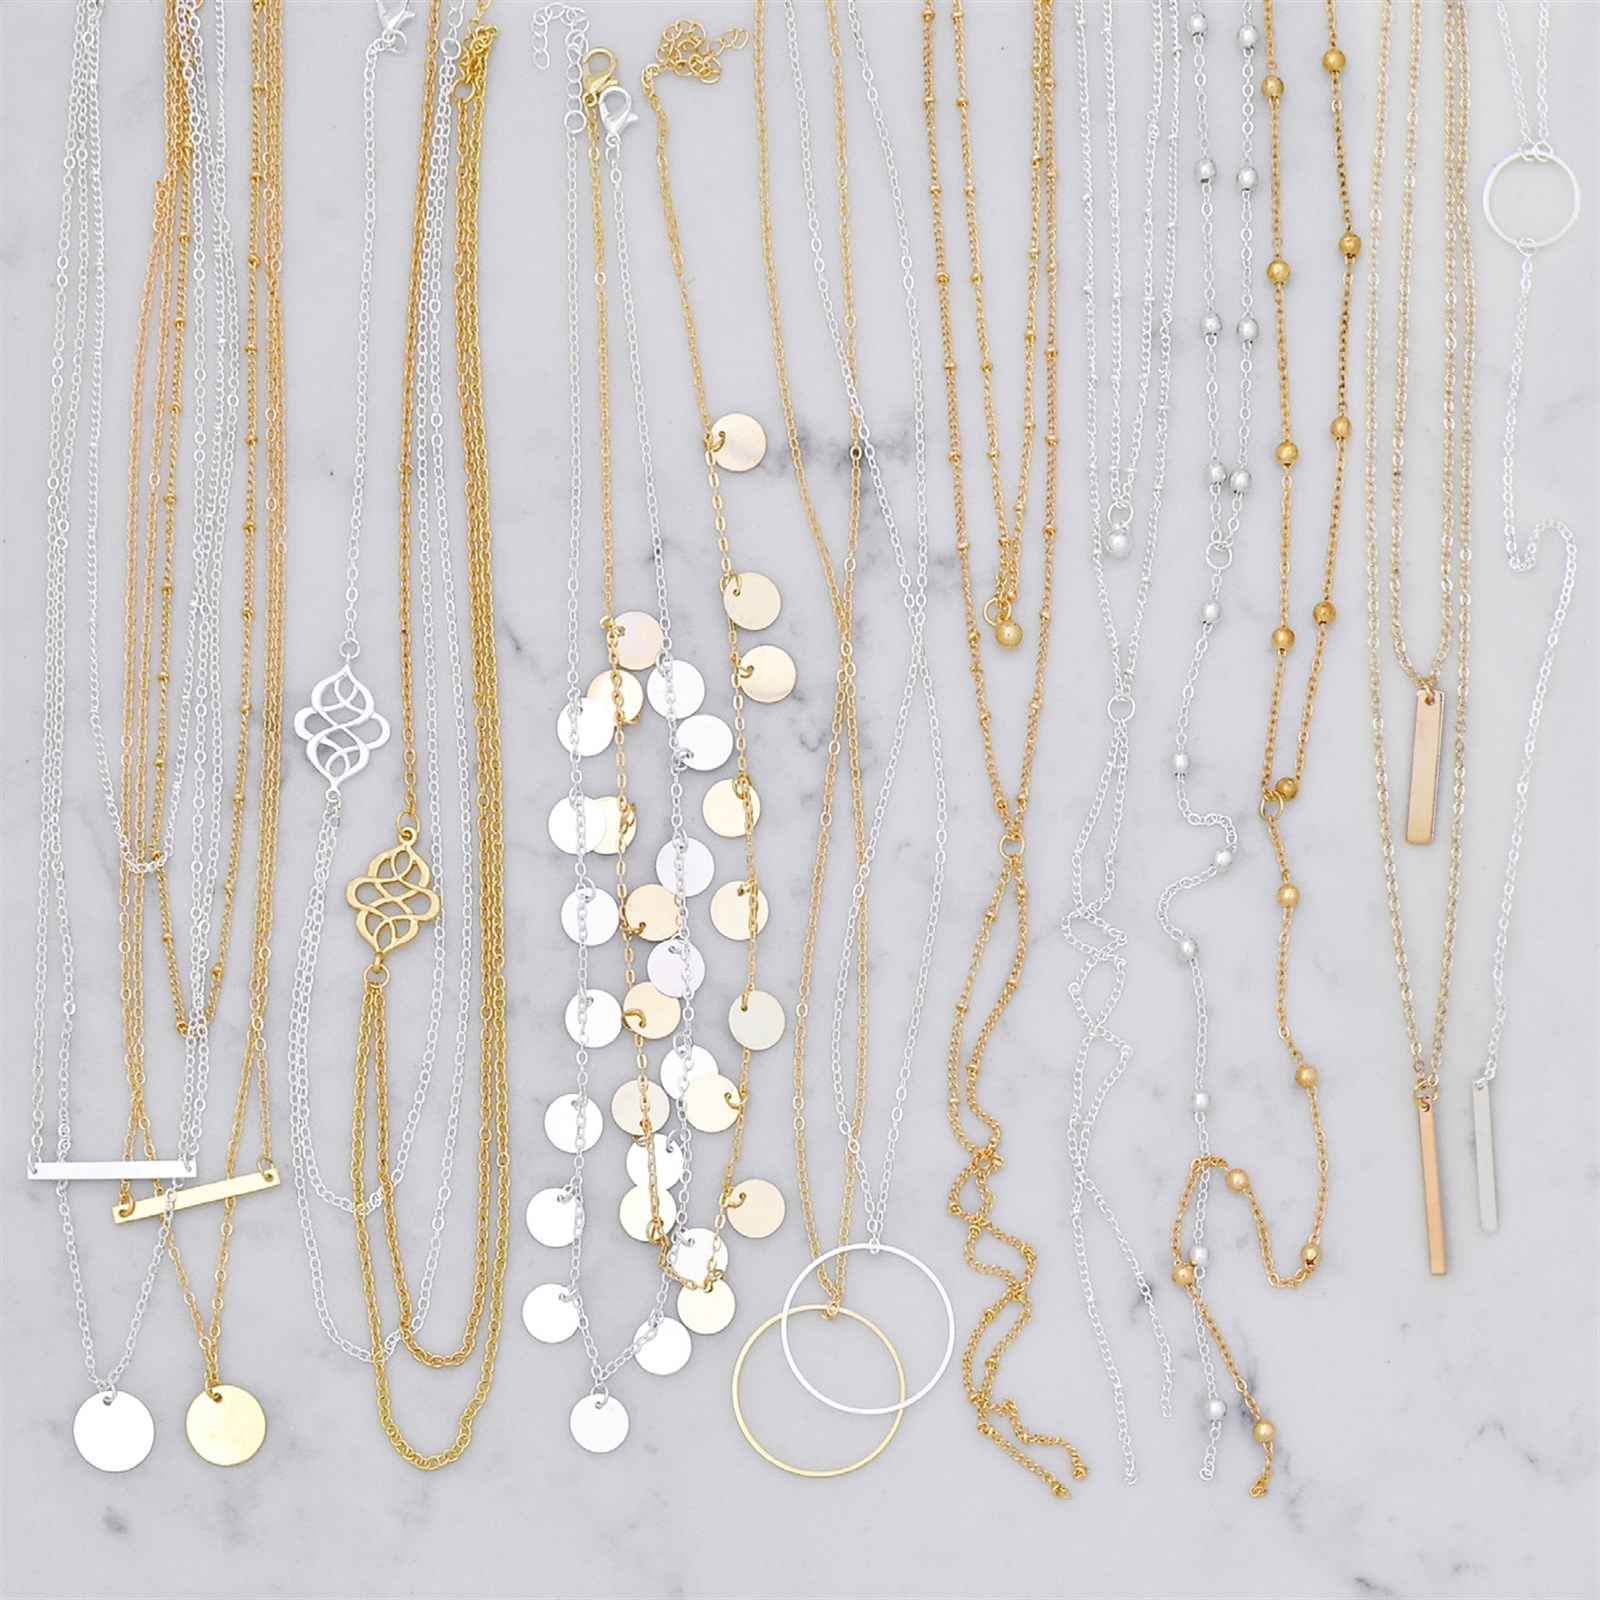 9b84959c2 Dainty Necklaces | Jane